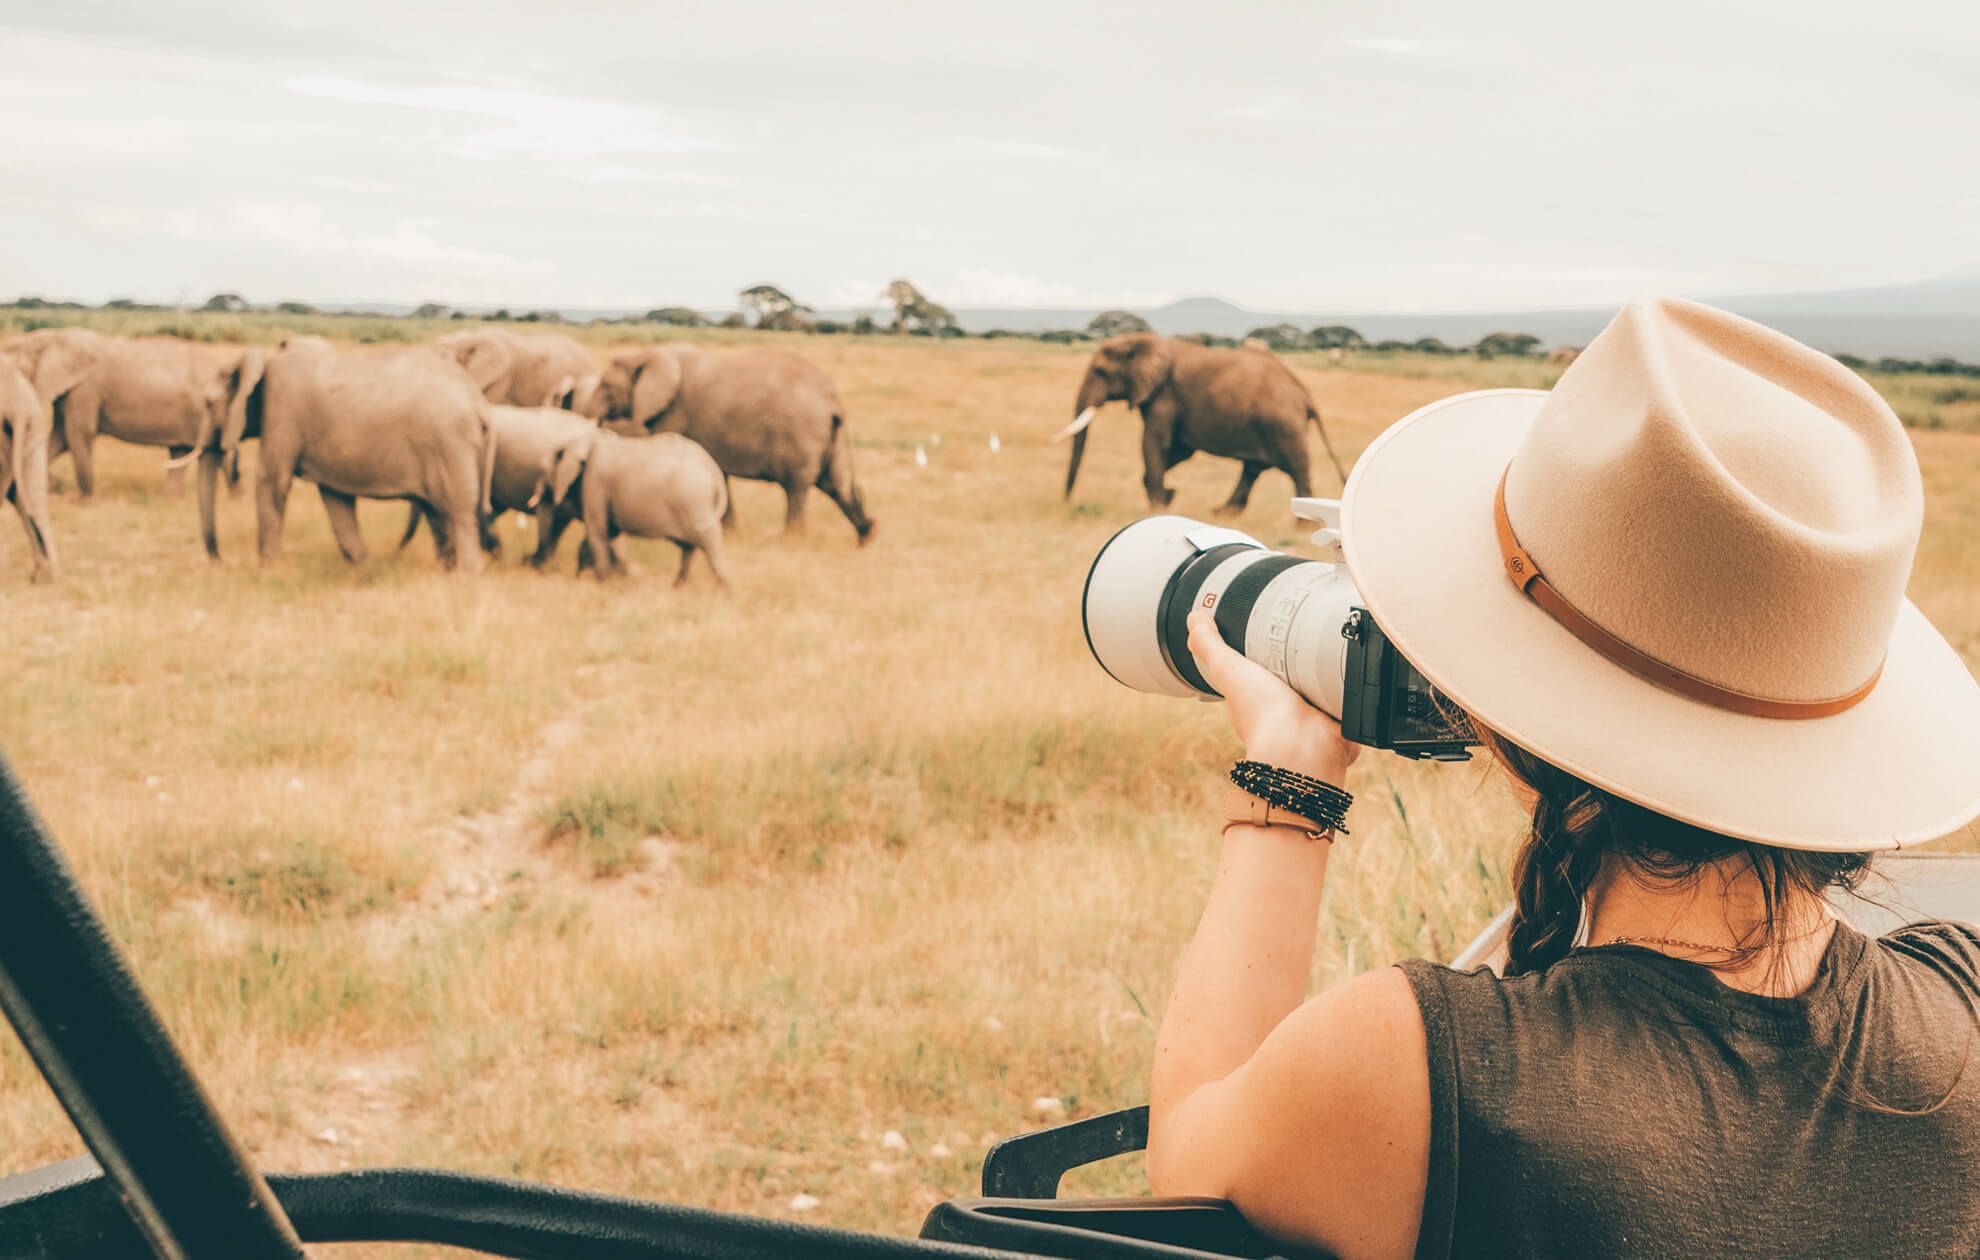 young women photographing elephants from afar on safari